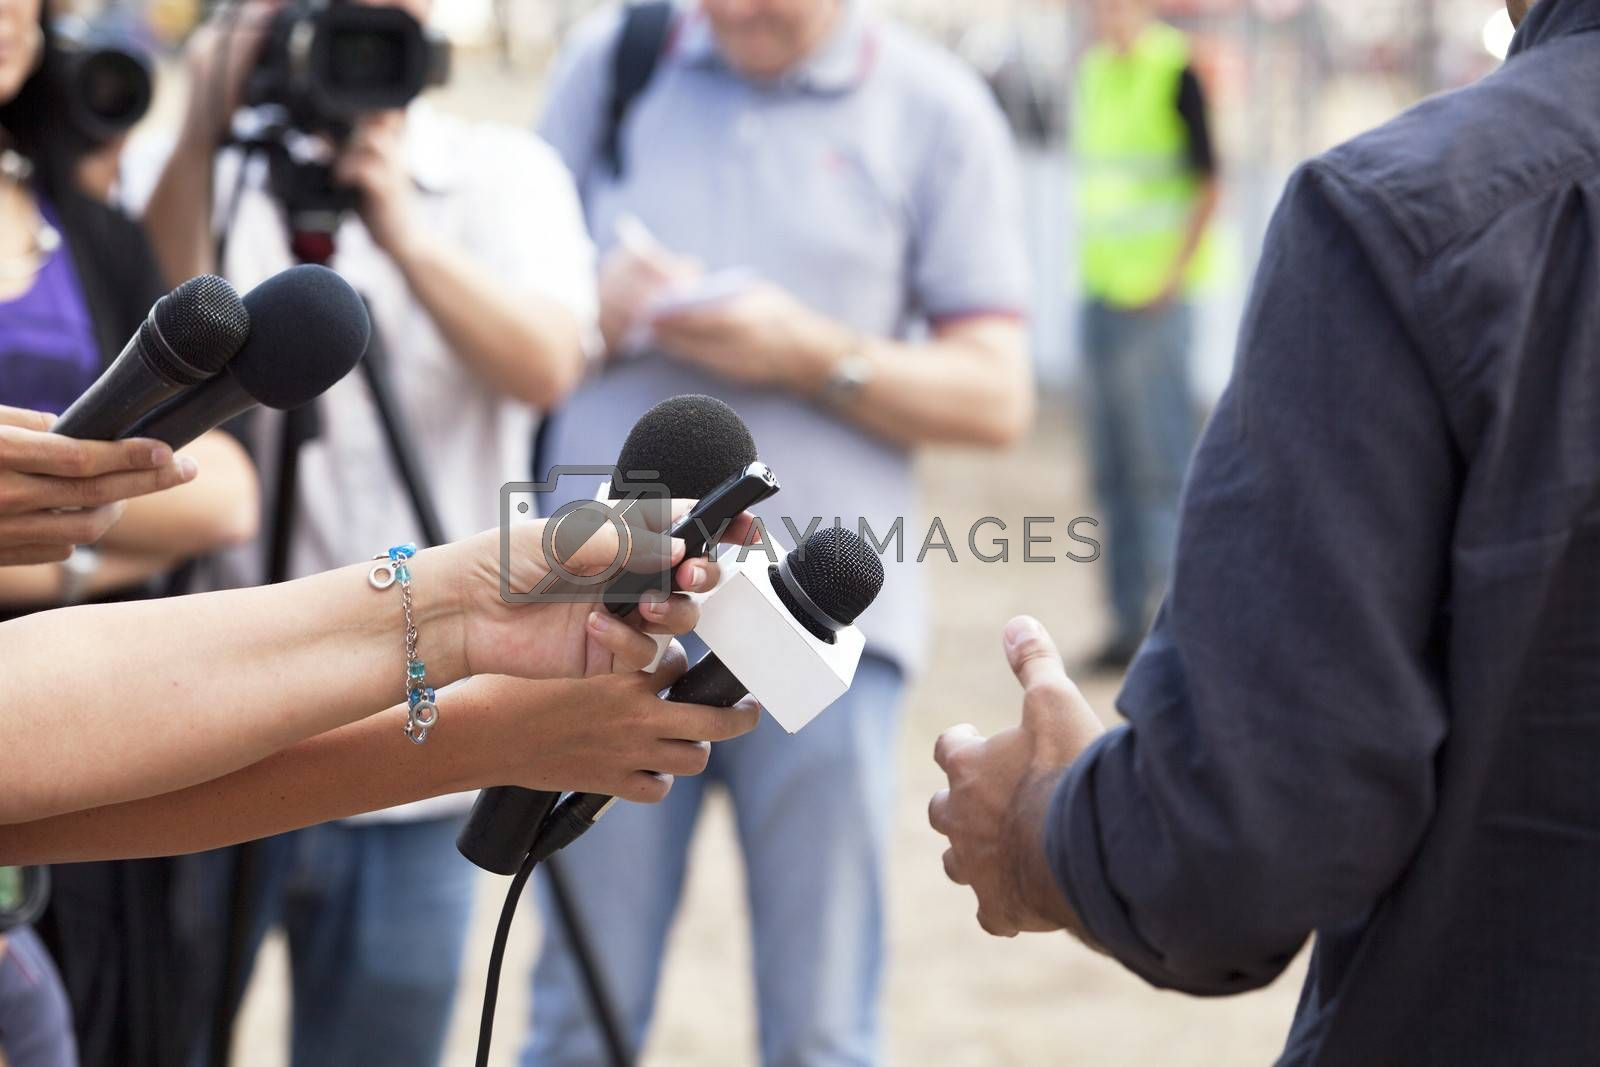 Journalist hand holding a microphone conducting an TV or radio interview